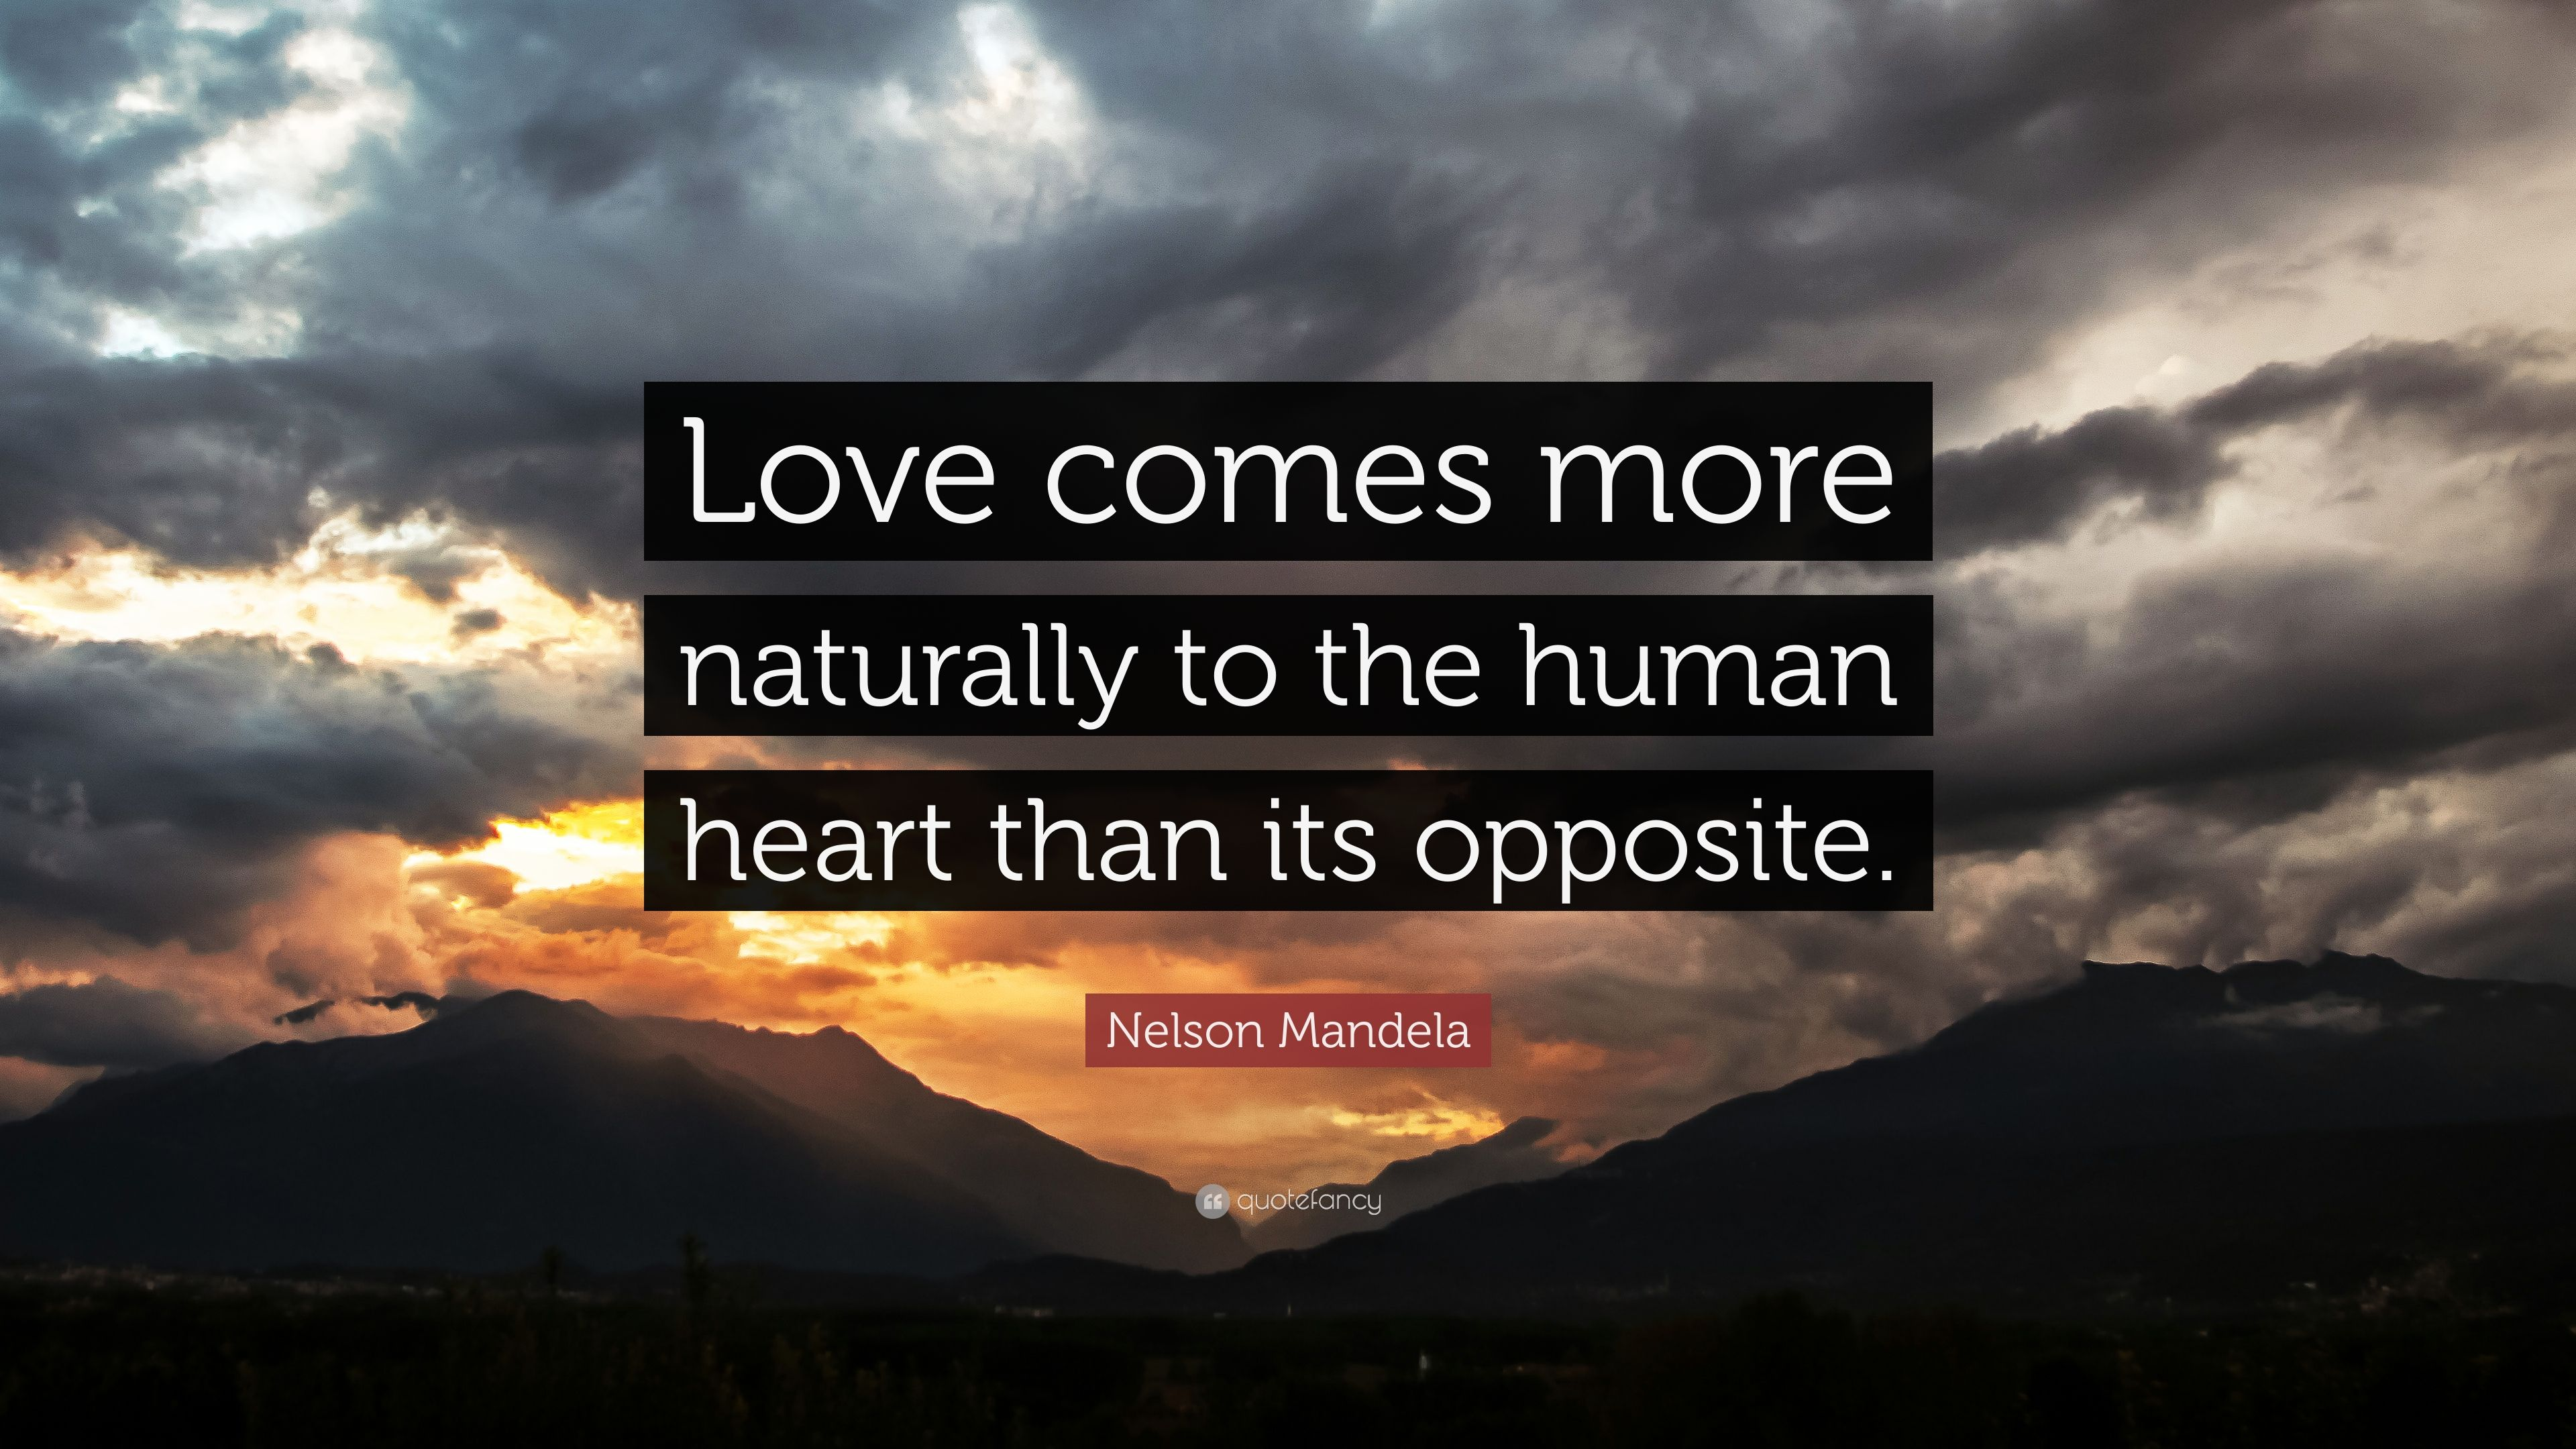 Nelson Mandela Quote: Love comes more naturally to the